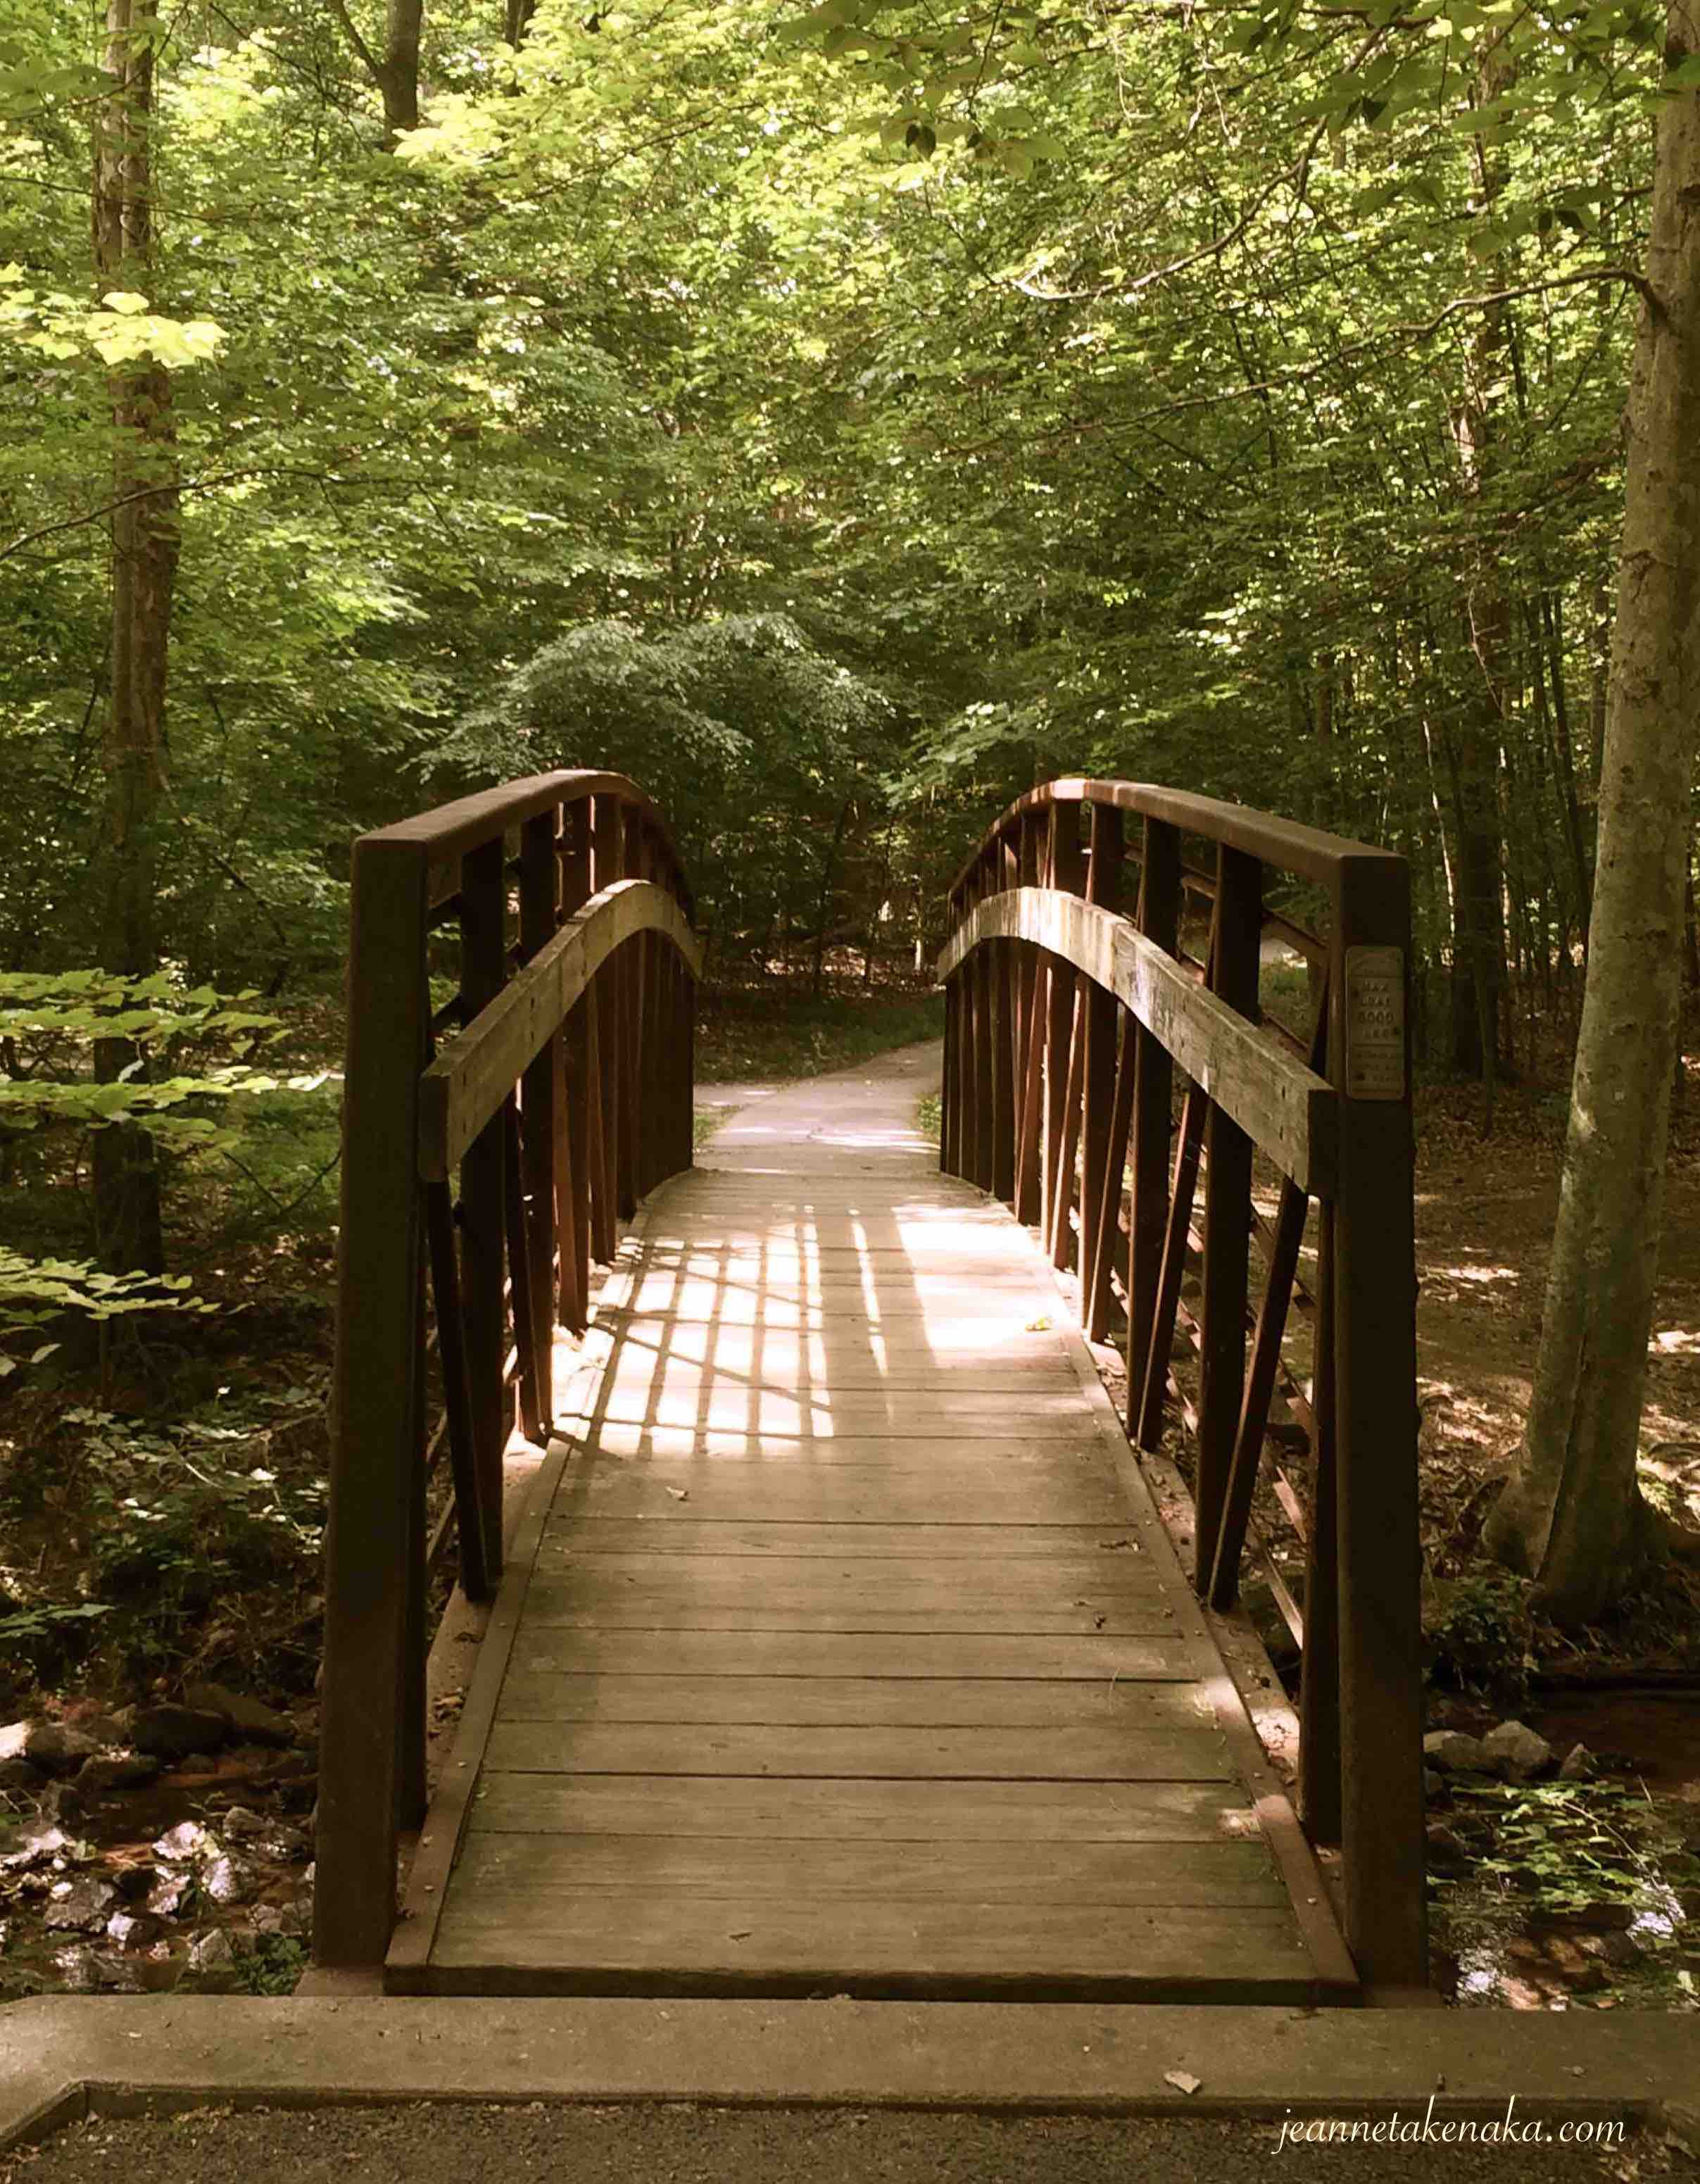 A wooden bridge in a forest, an invitation to walk with God beyond disappointment